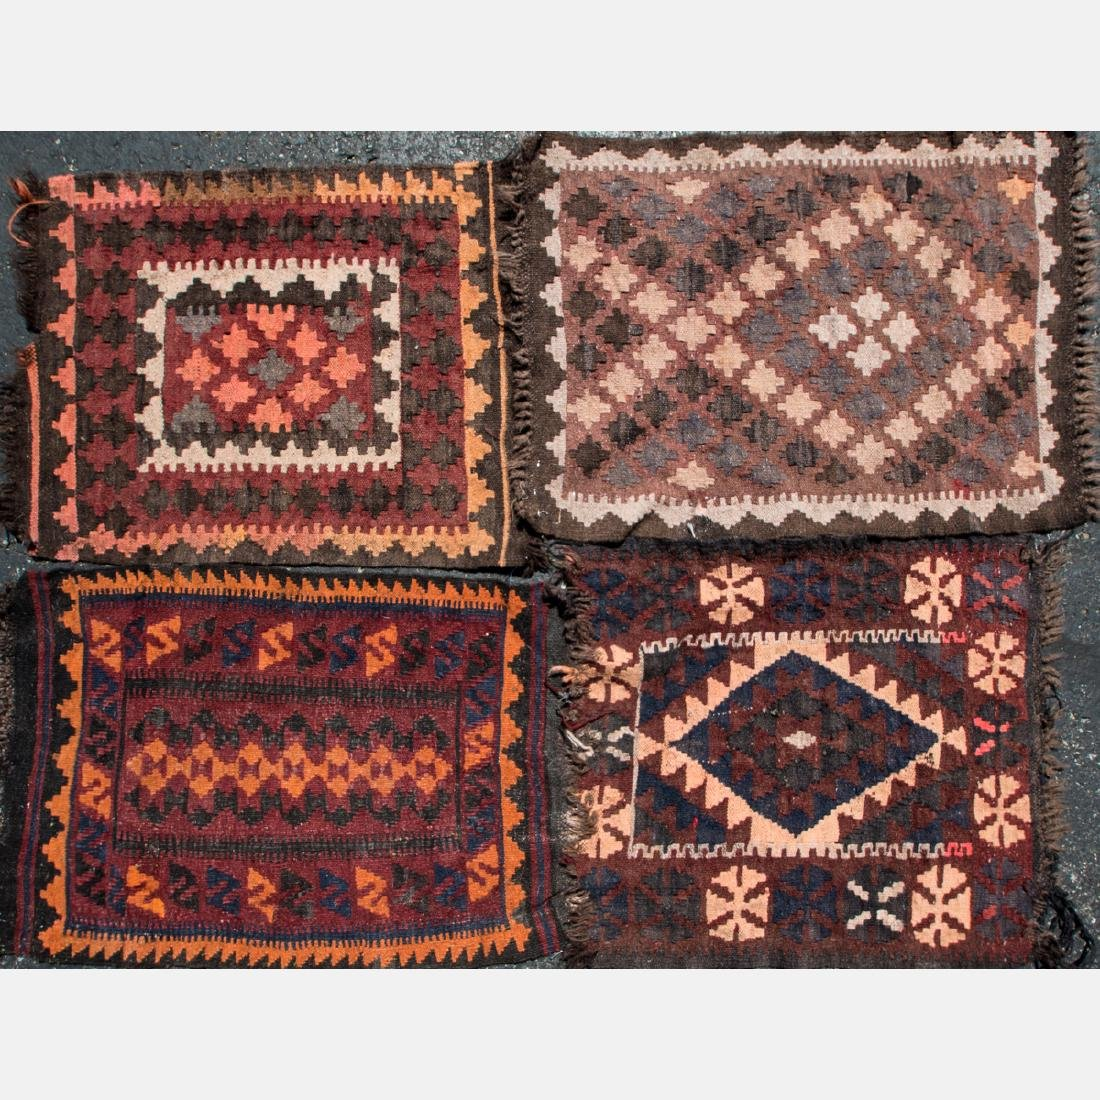 A Group of Four Afghan Wool Rugs, 20th Century.